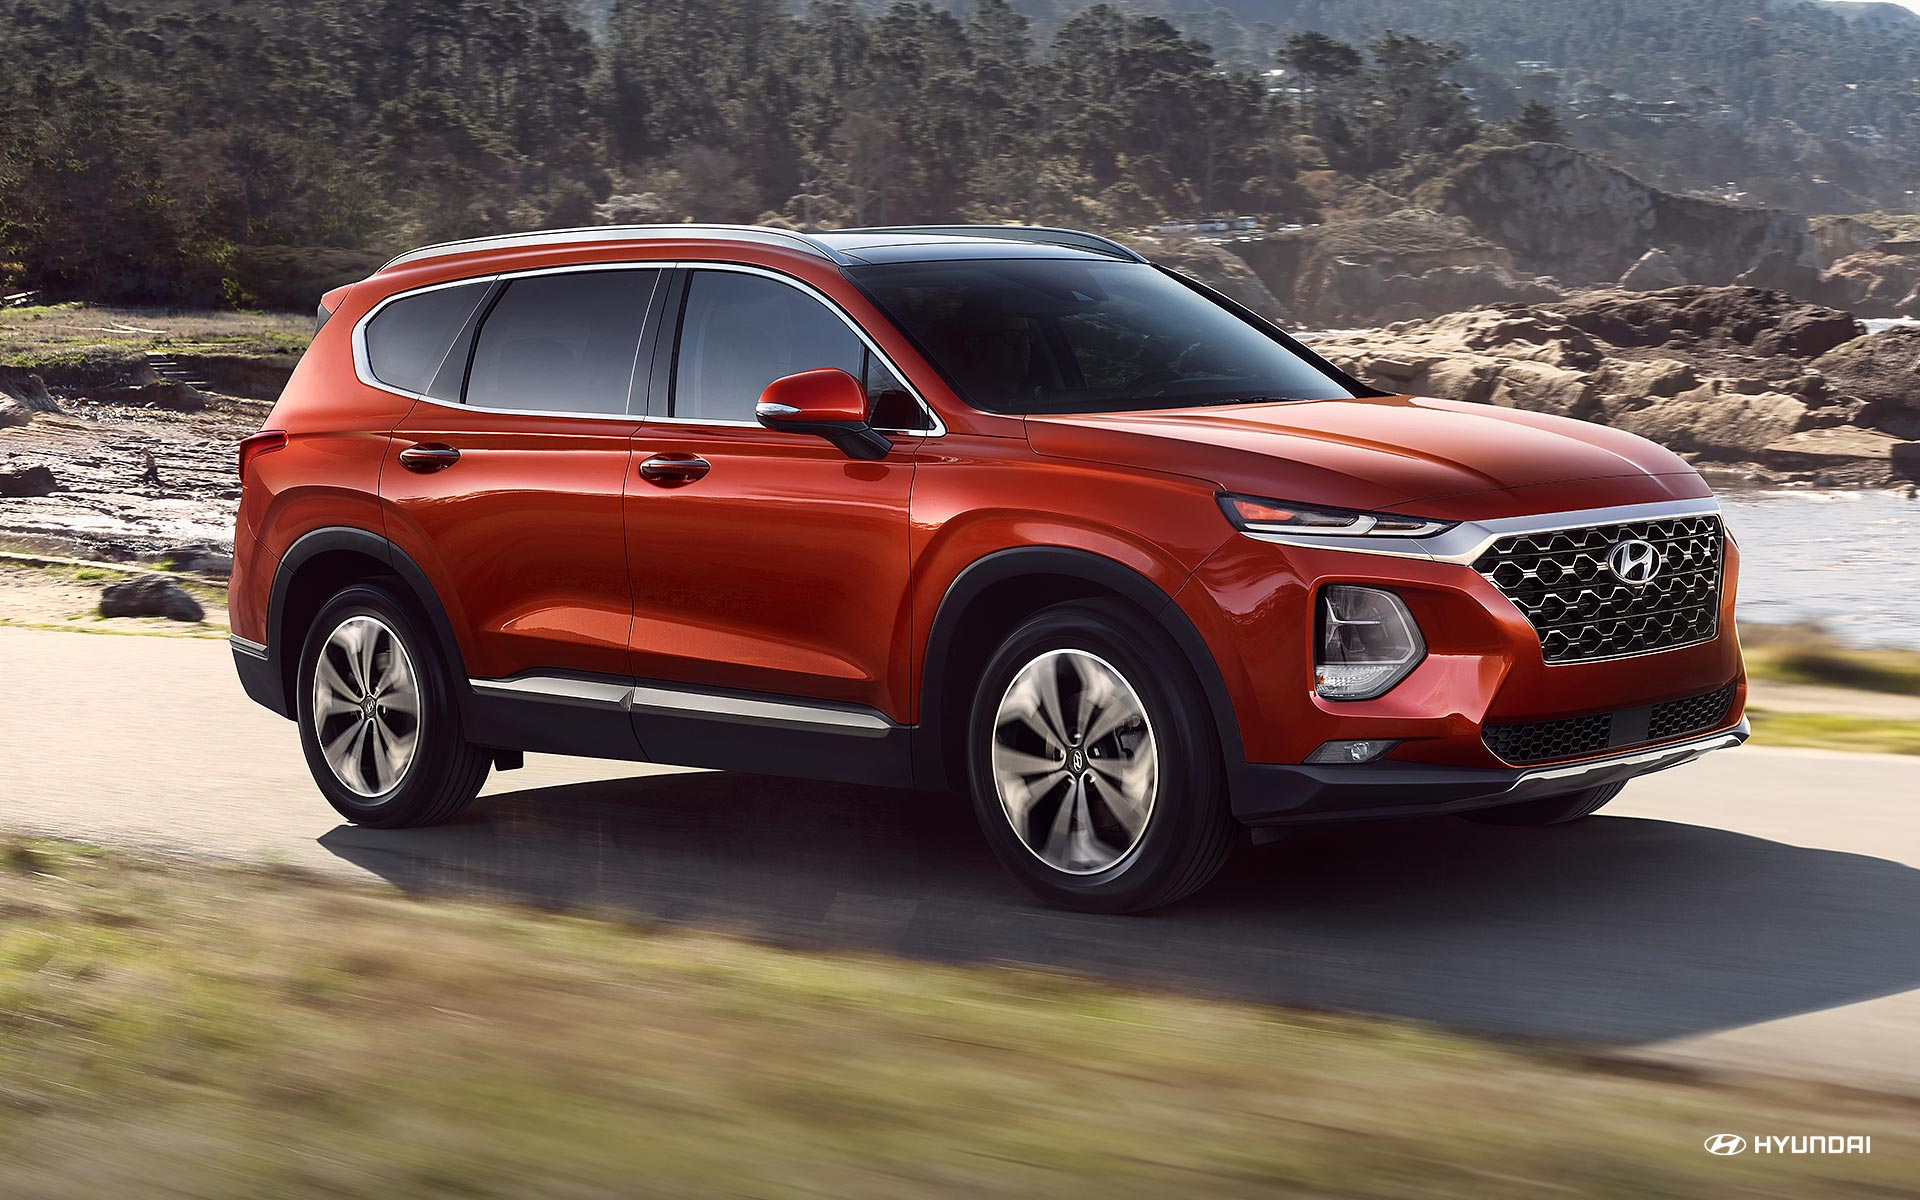 2019 Hyundai Santa Fe for Lease near Laurel, MD